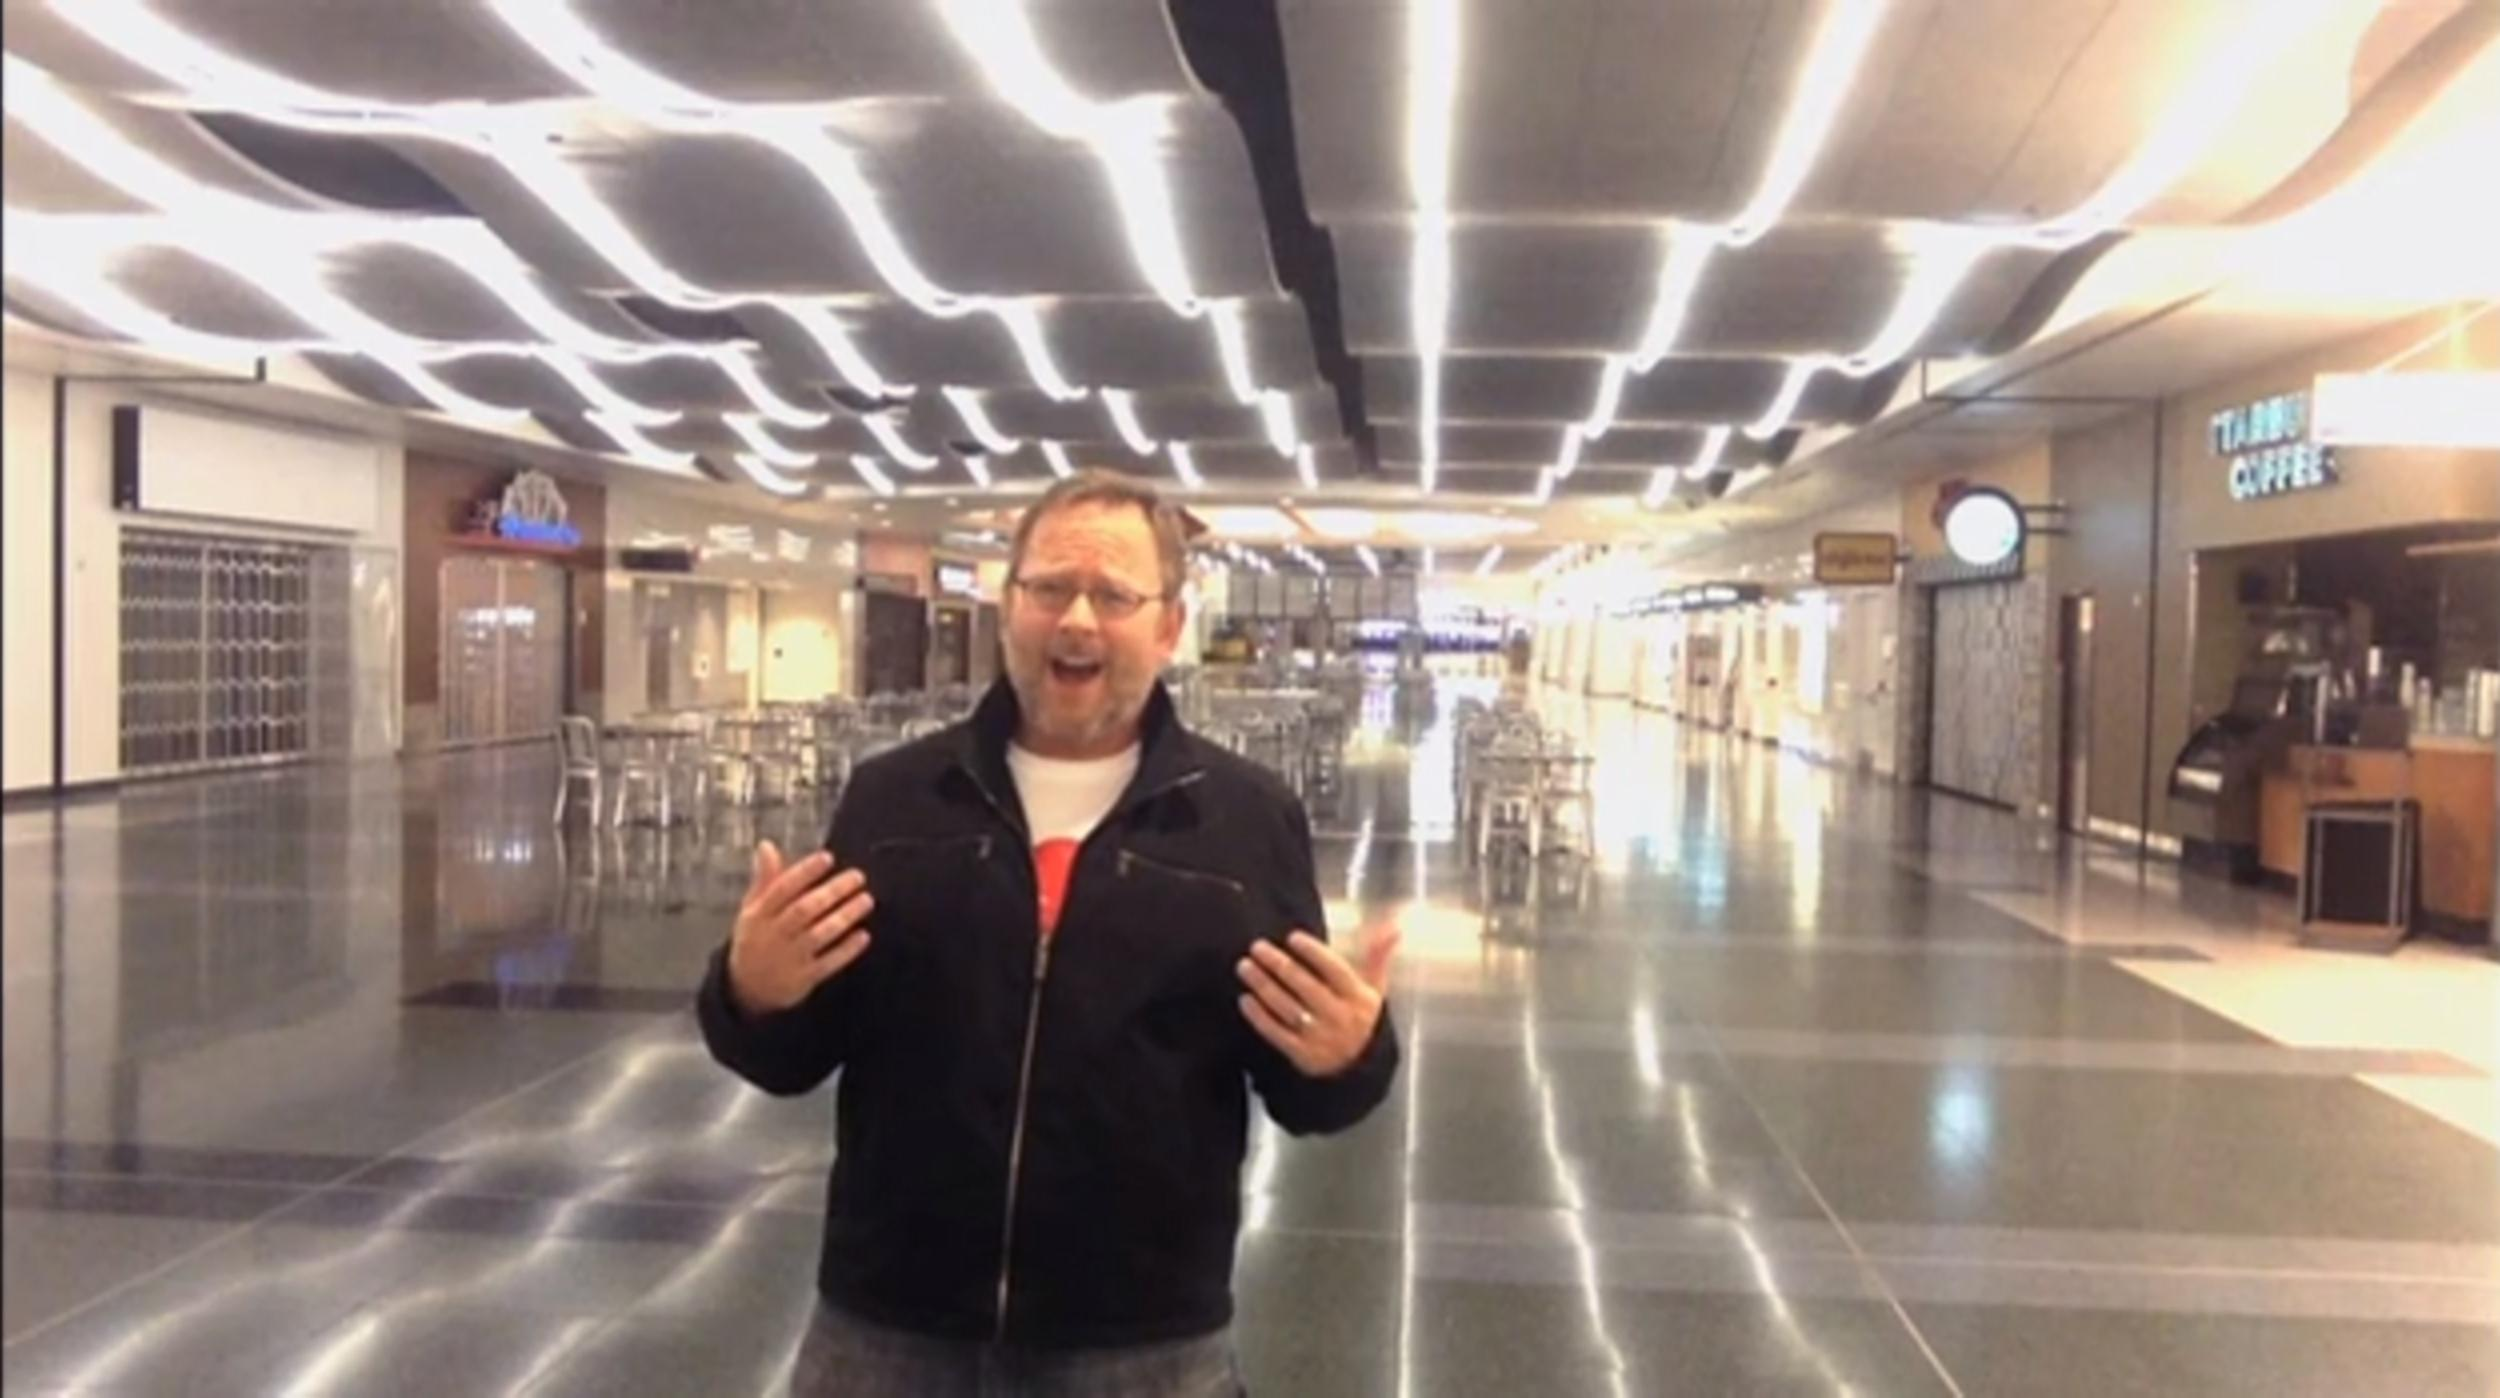 Image: Richard Dunn made a hilarious viral video while overnight in McCarran International Airport in Las Vegas